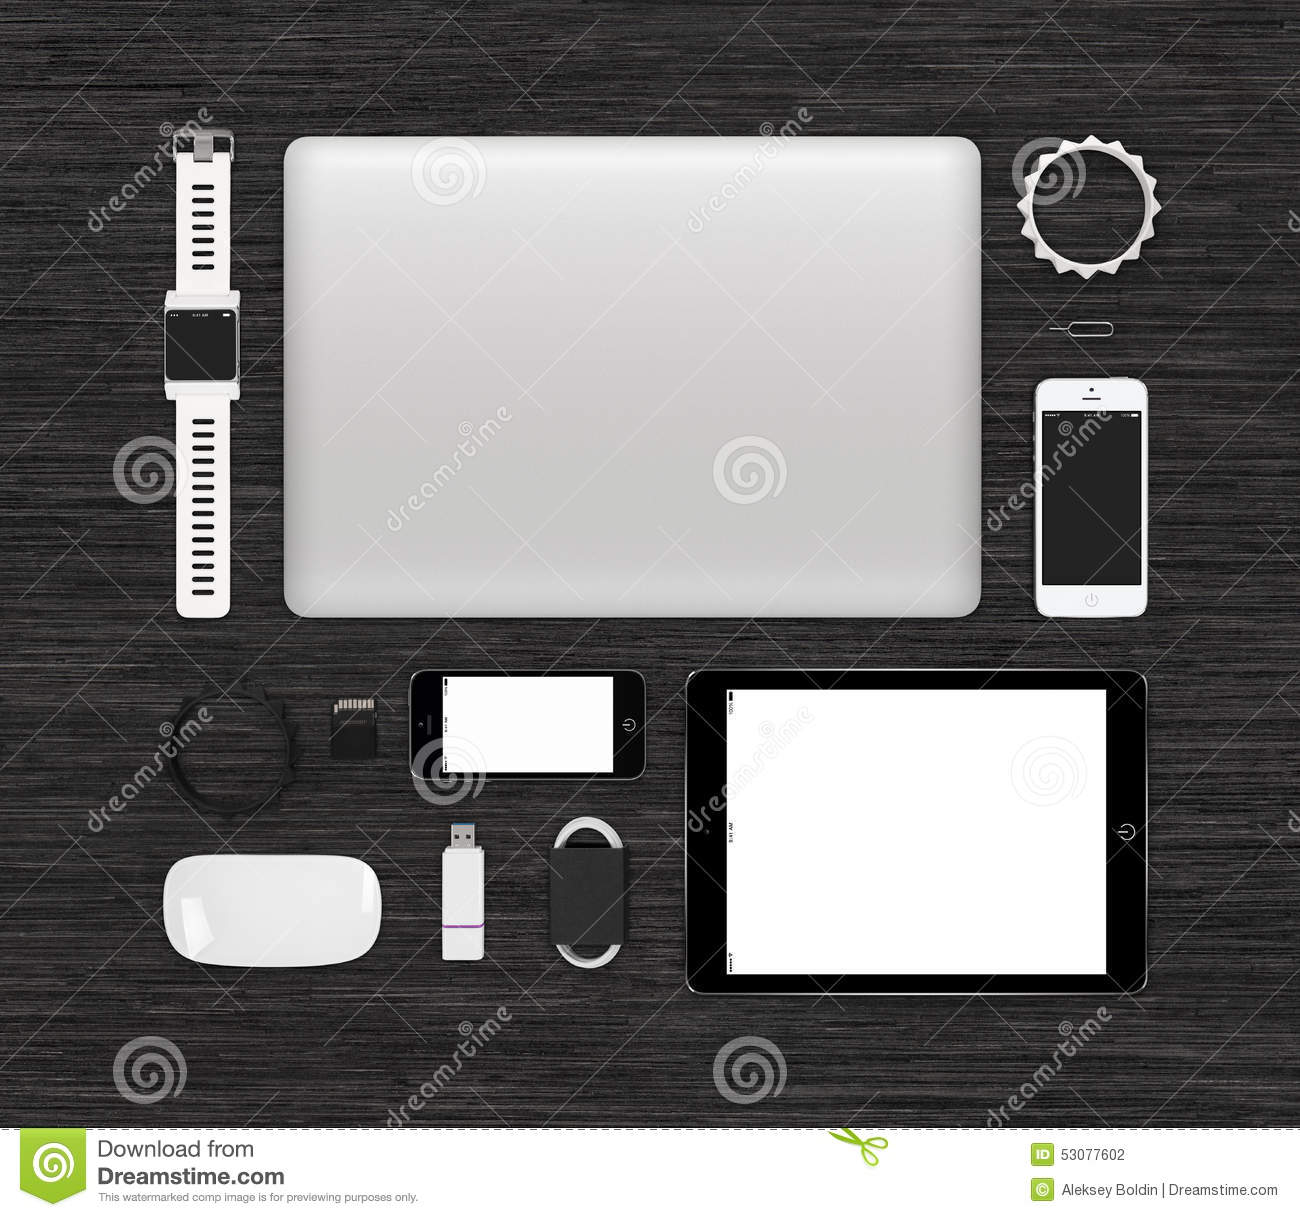 Top View Of Tech Gadgets Mock Up For Branding Identity On